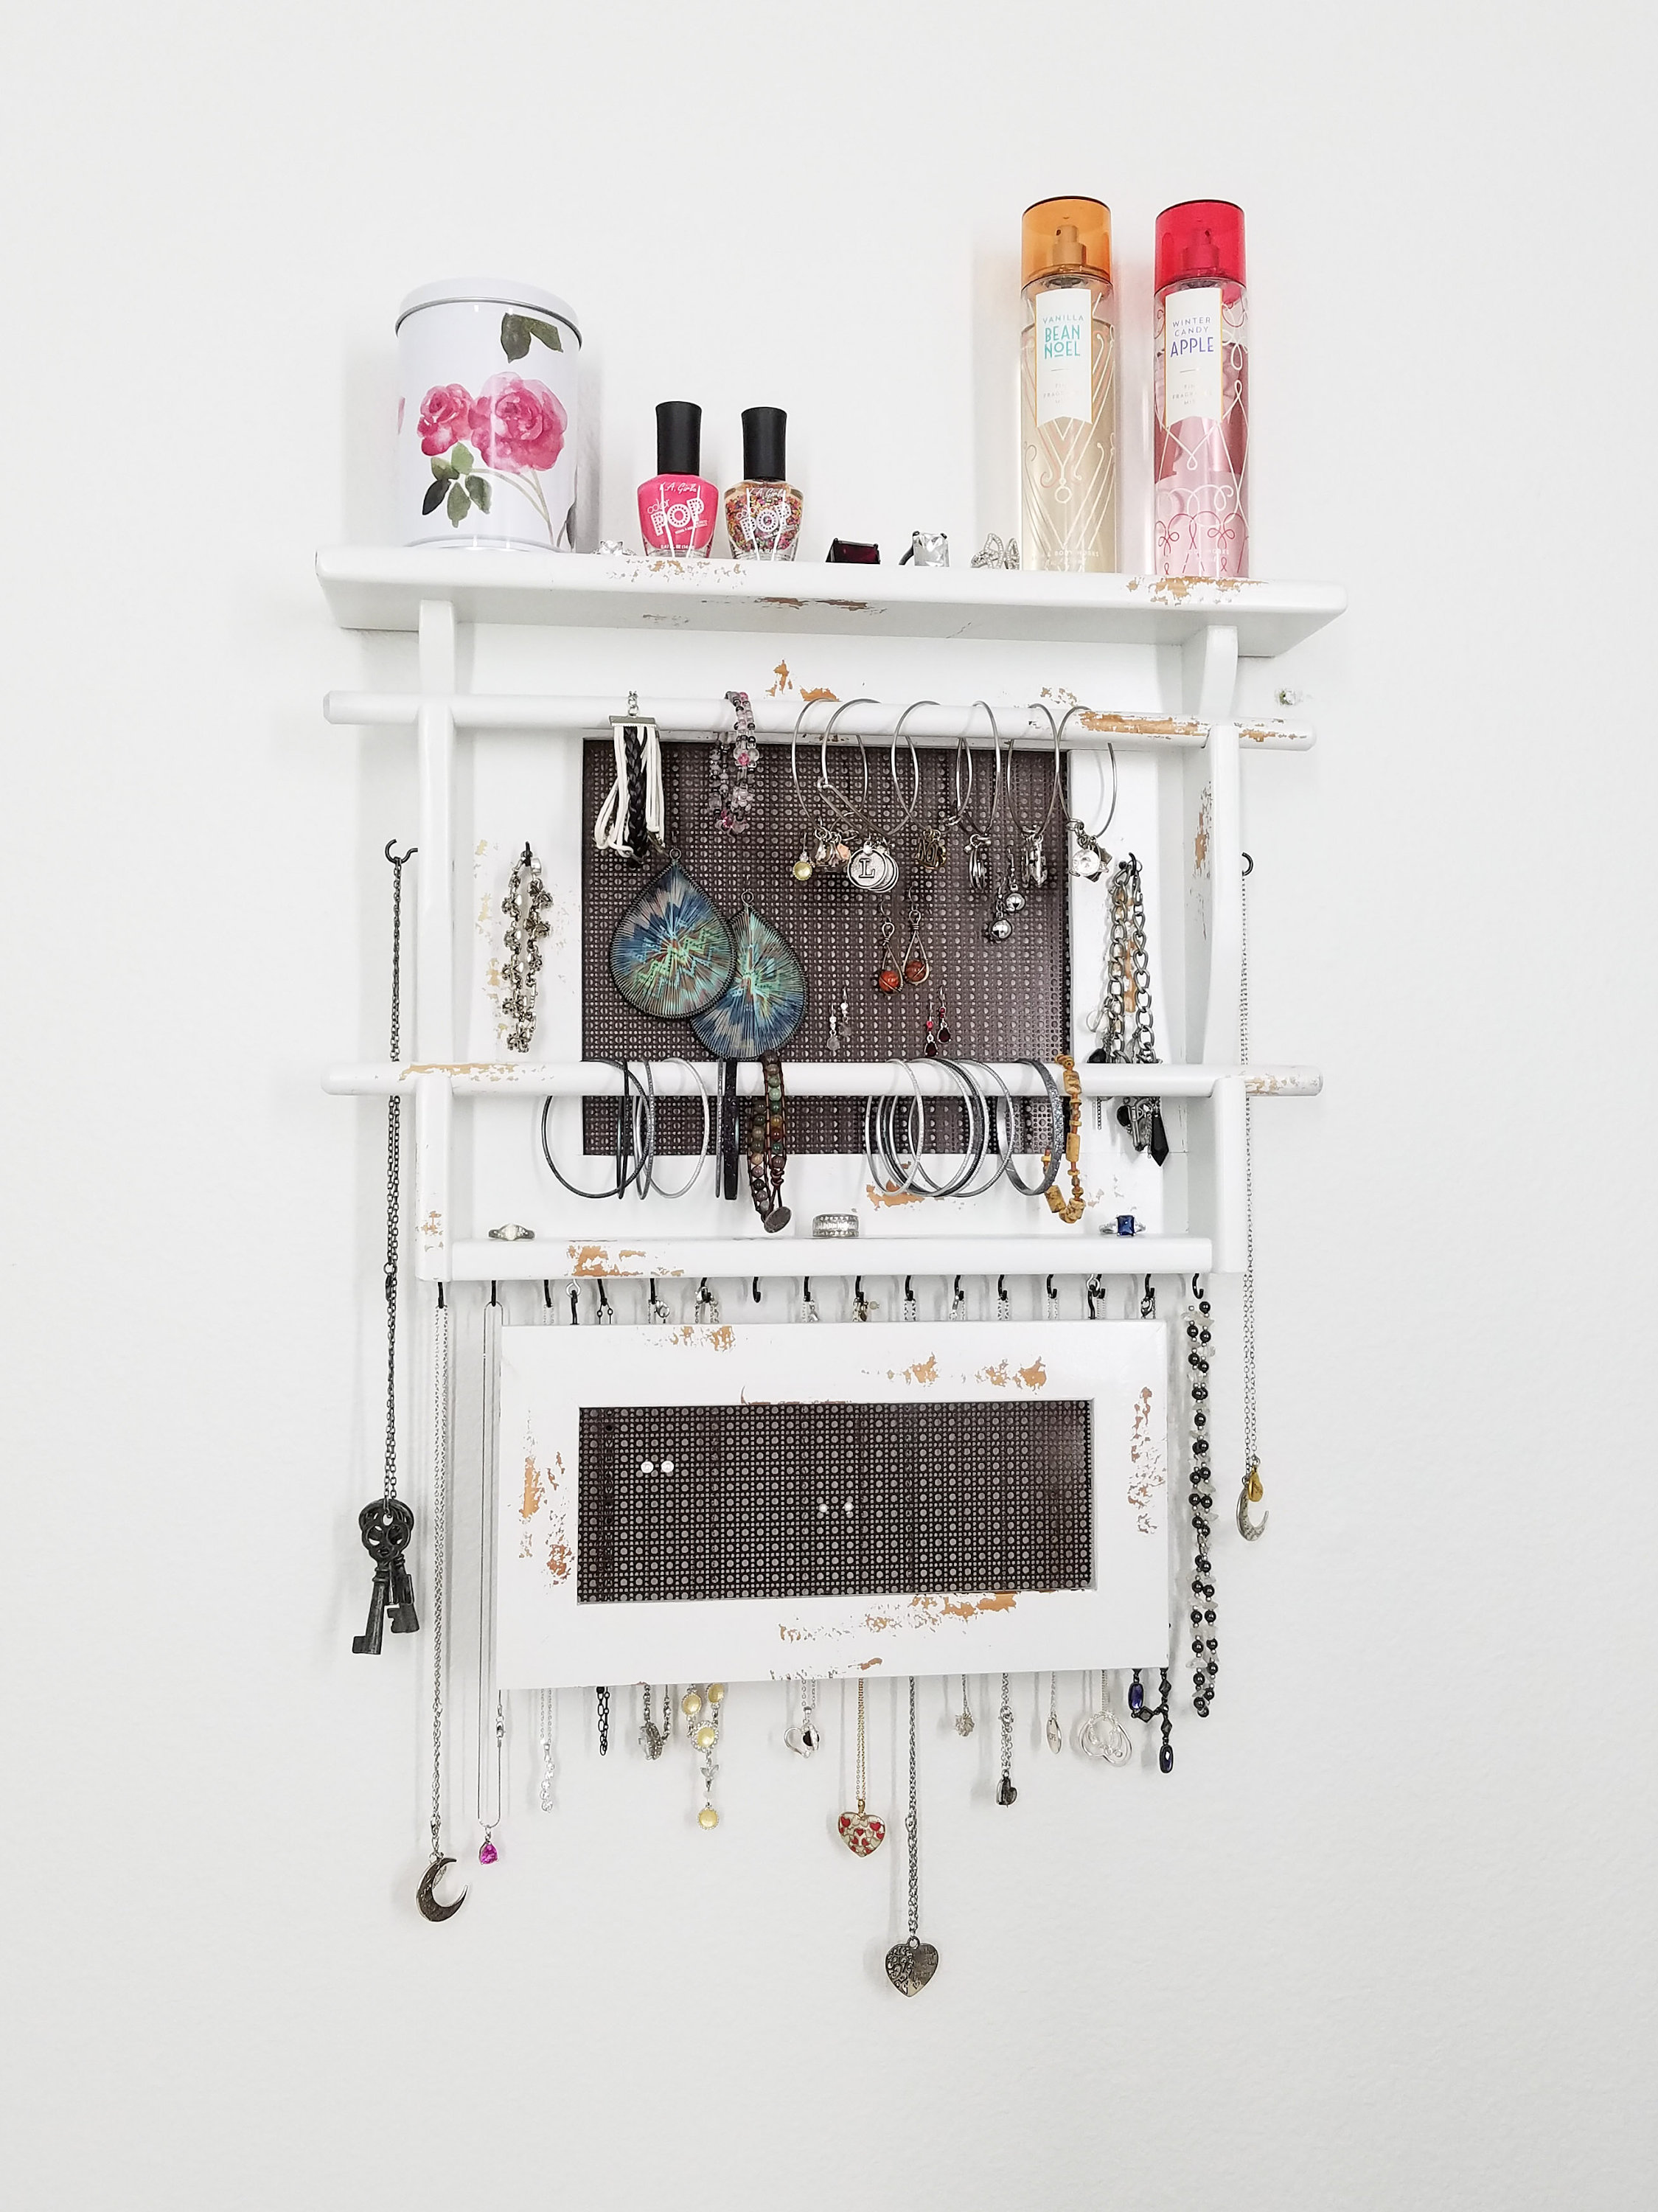 10 Jewelry Organizers So You Never Have Tangled Jewelry